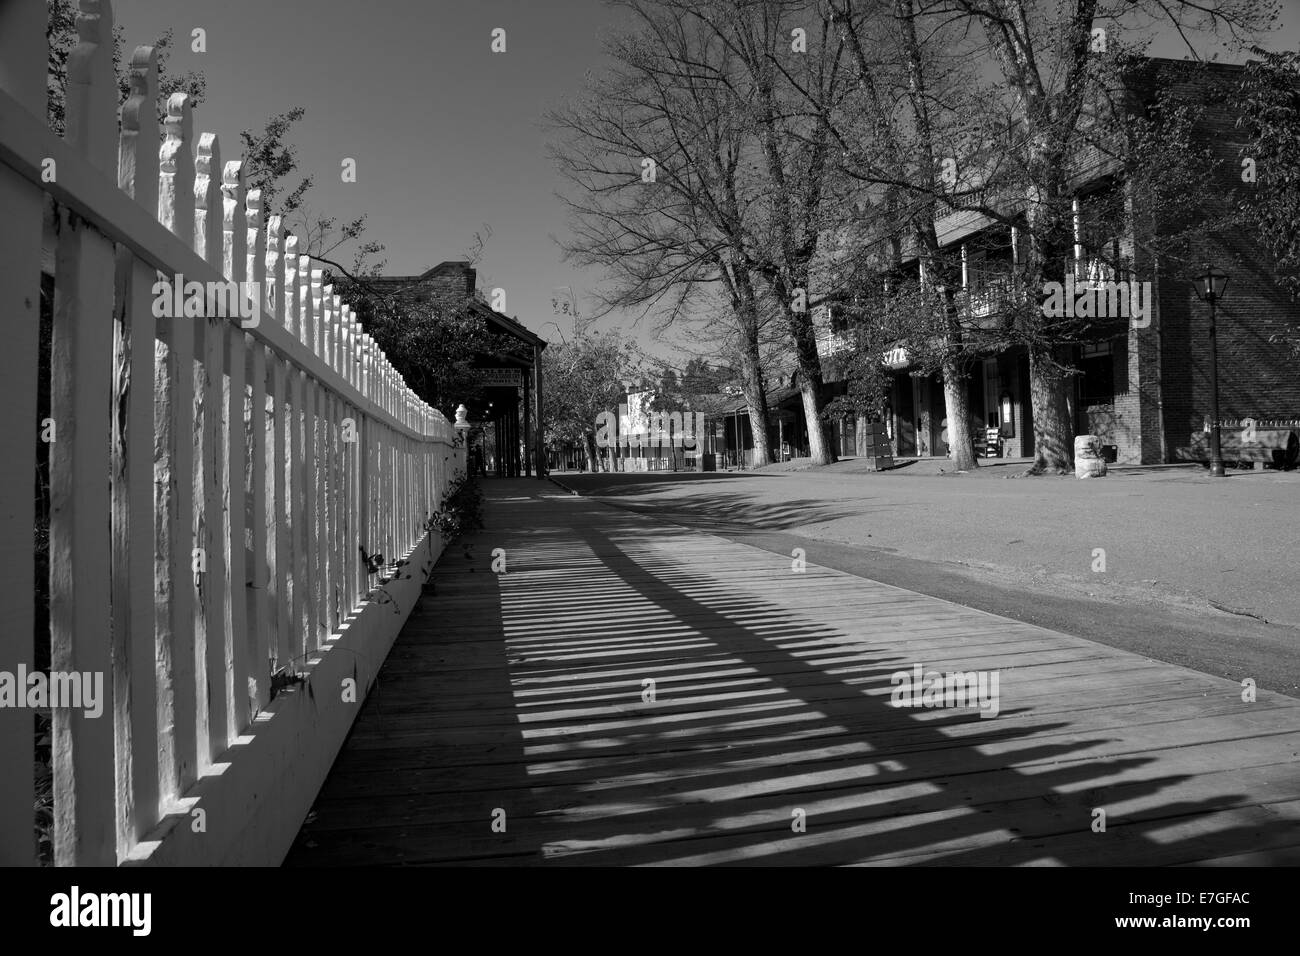 White picket fence and City Hotel (1856), Main Street, Columbia State Historic Park, Columbia, Tuolumne County, - Stock Image